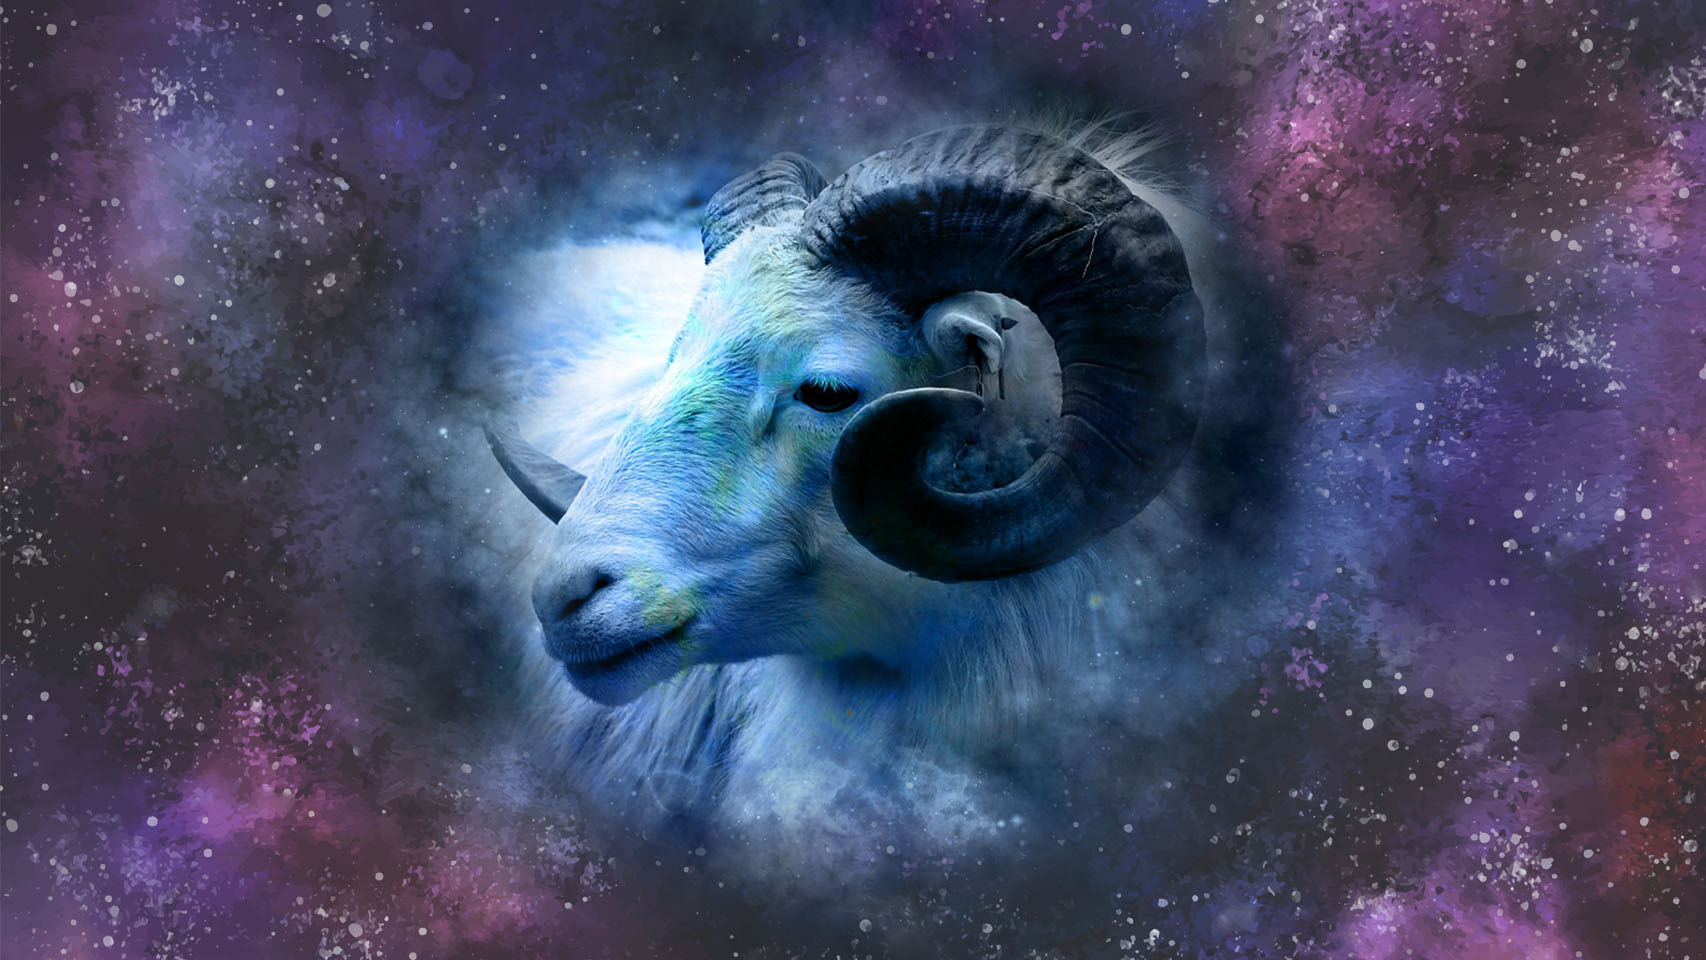 aries-zodiac-sign-temperament-and-character